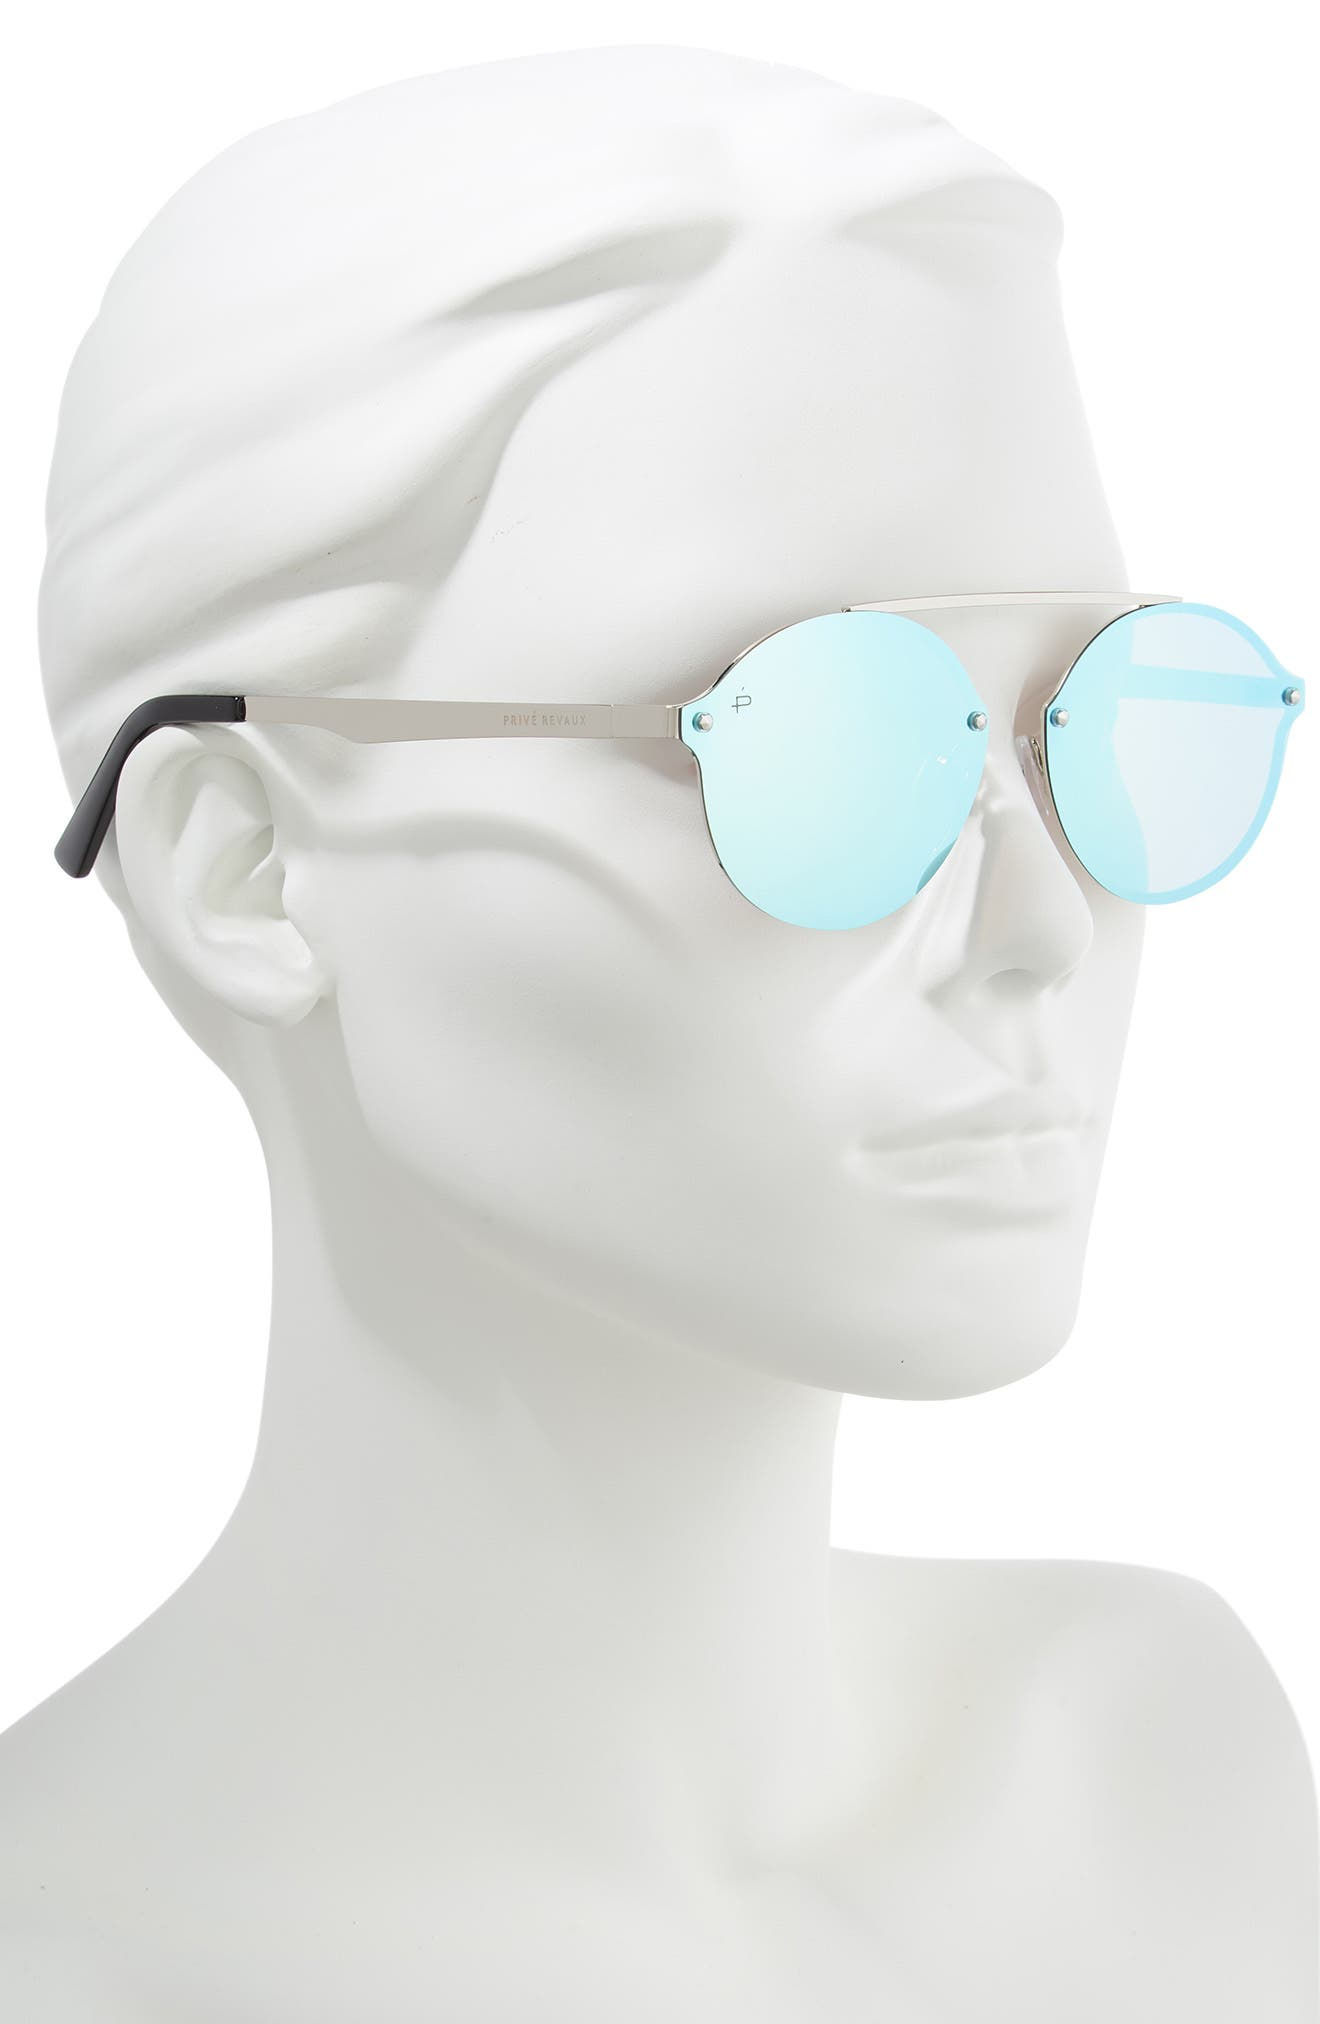 Privé Revaux The Orient 58mm Sunglasses,                             Alternate thumbnail 2, color,                             DARK BLUE MIRROR